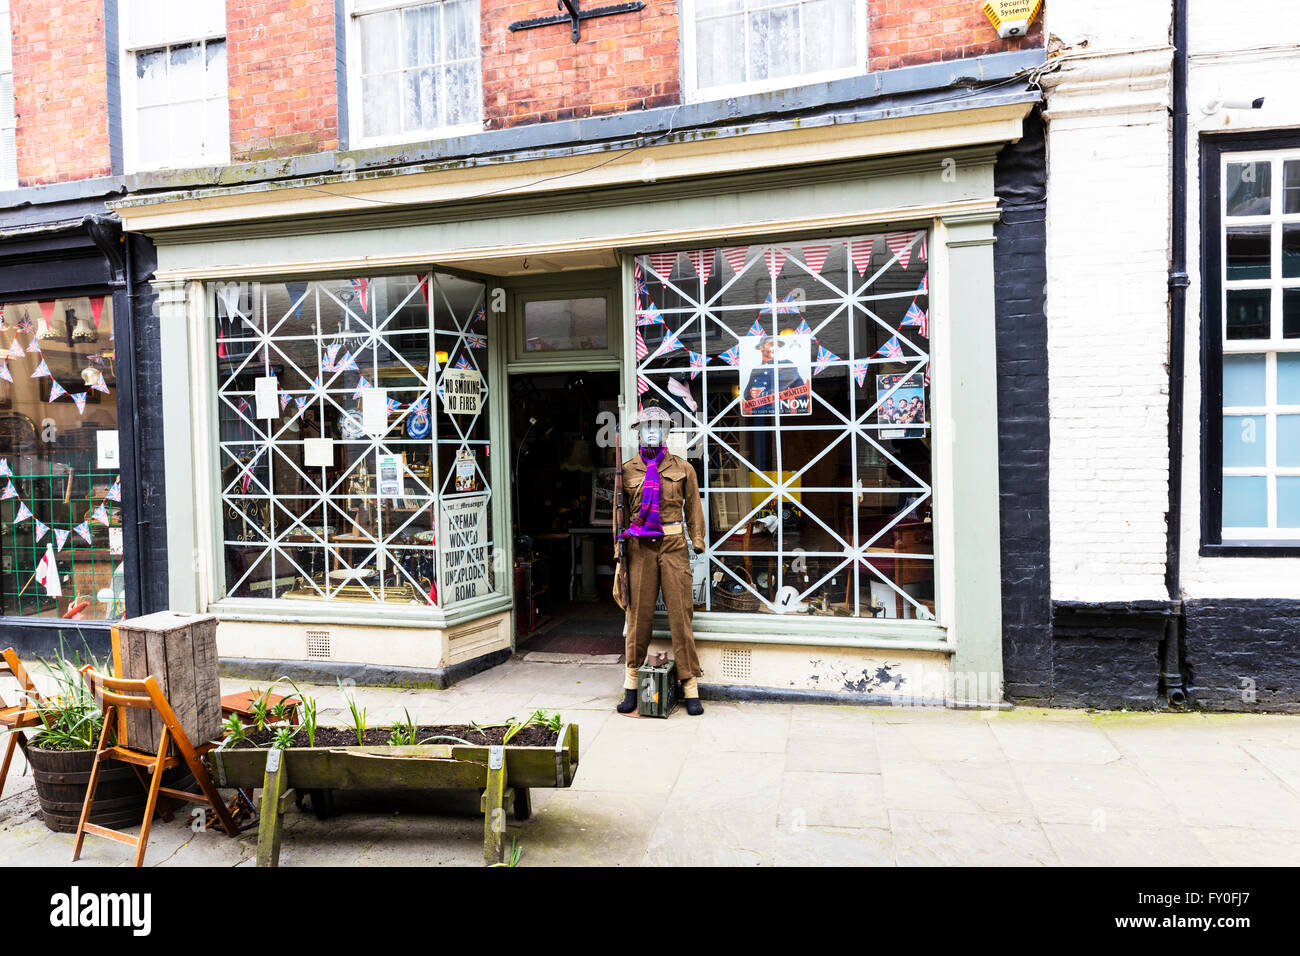 Bridlington old town shops shop dads army decor blitz tape on windows Yorkshire UK England coastal town towns - Stock Image